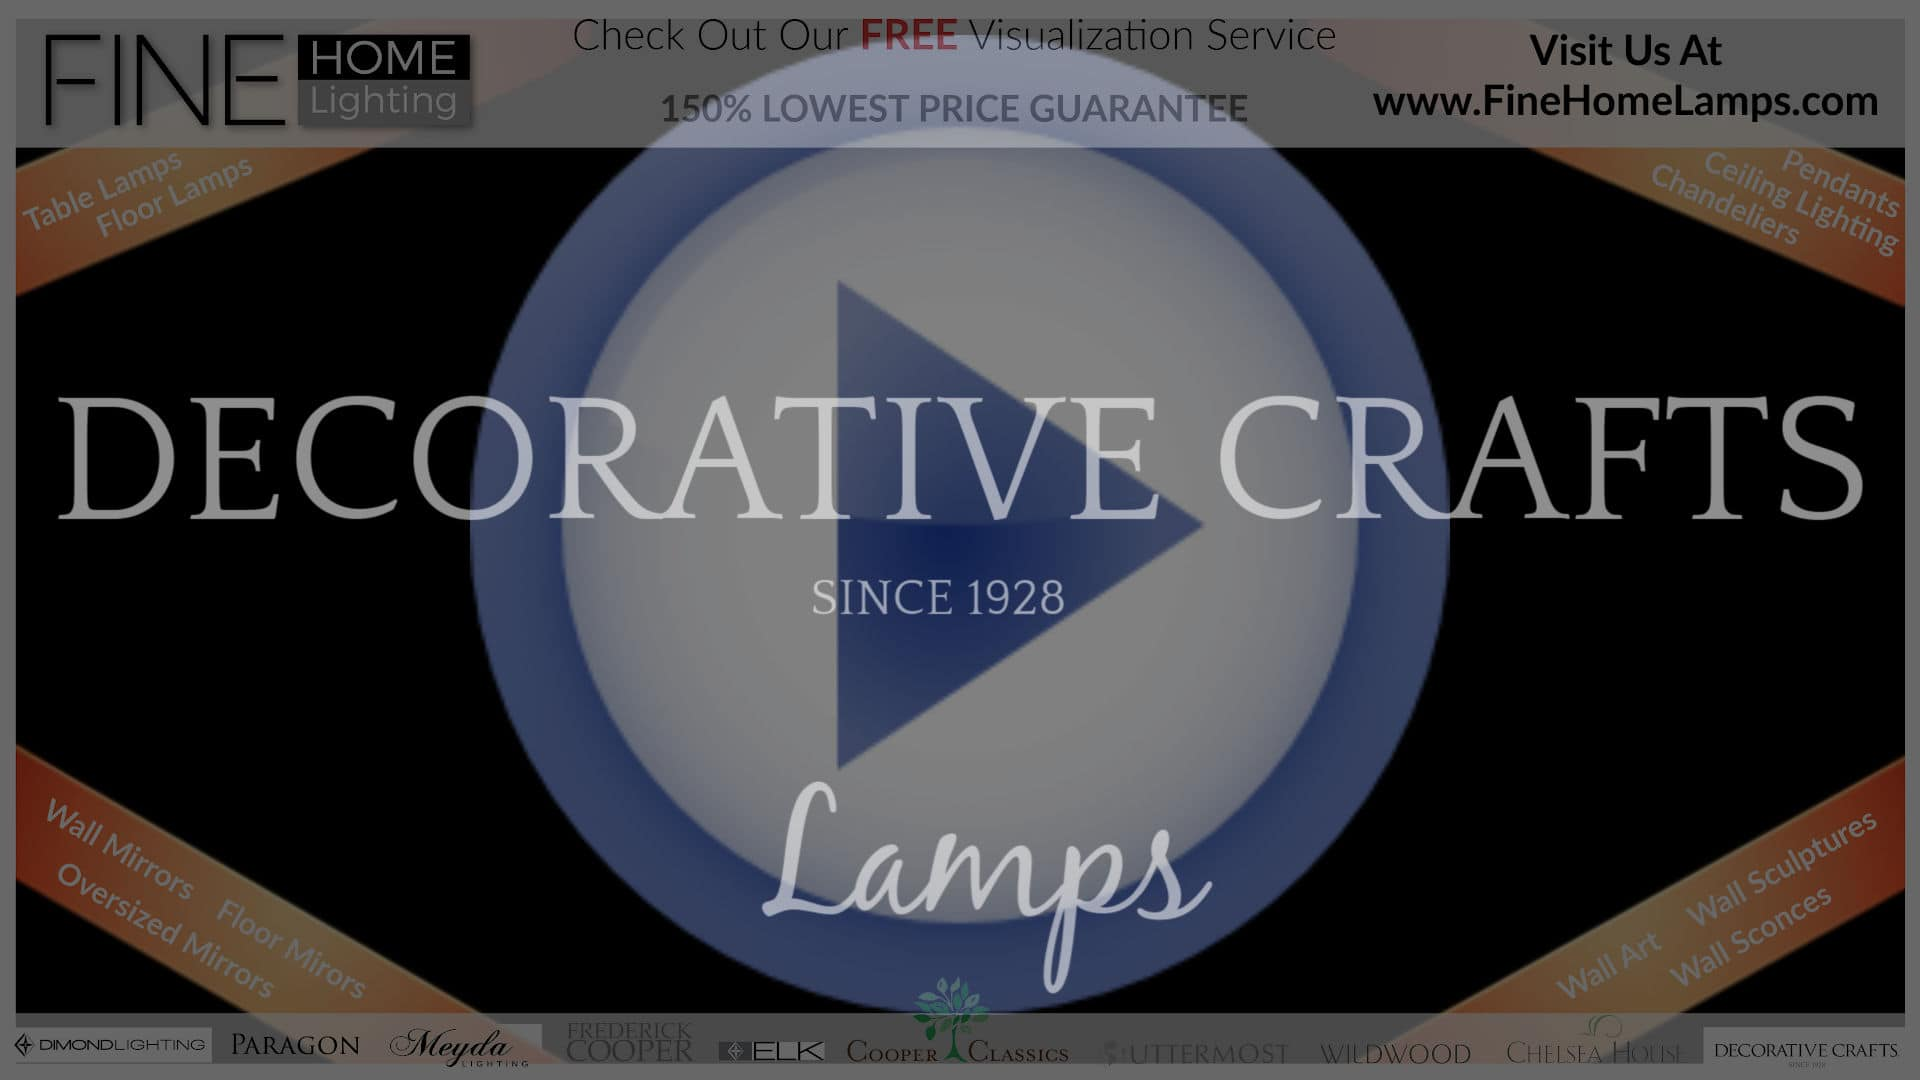 DECORATIVE-CRAFTS-LAMPS-Thanks-for-watching-this-video-Get-an-additional-15-percent-off-your-next-purchase-Use-Coupon-Code-VIDEO